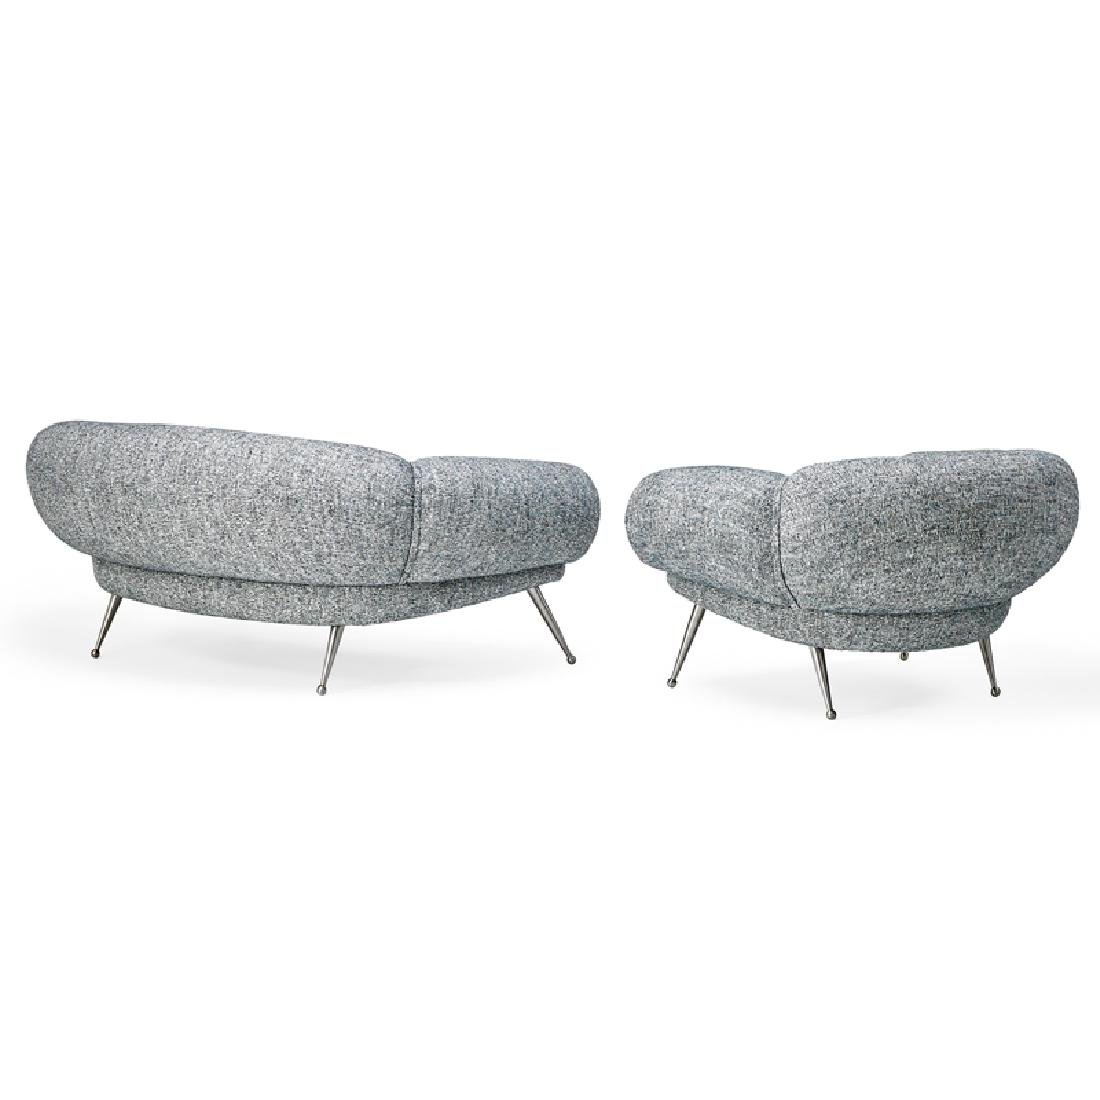 STYLE OF ILLUM WIKKELSO Sofa and lounge chair - 2